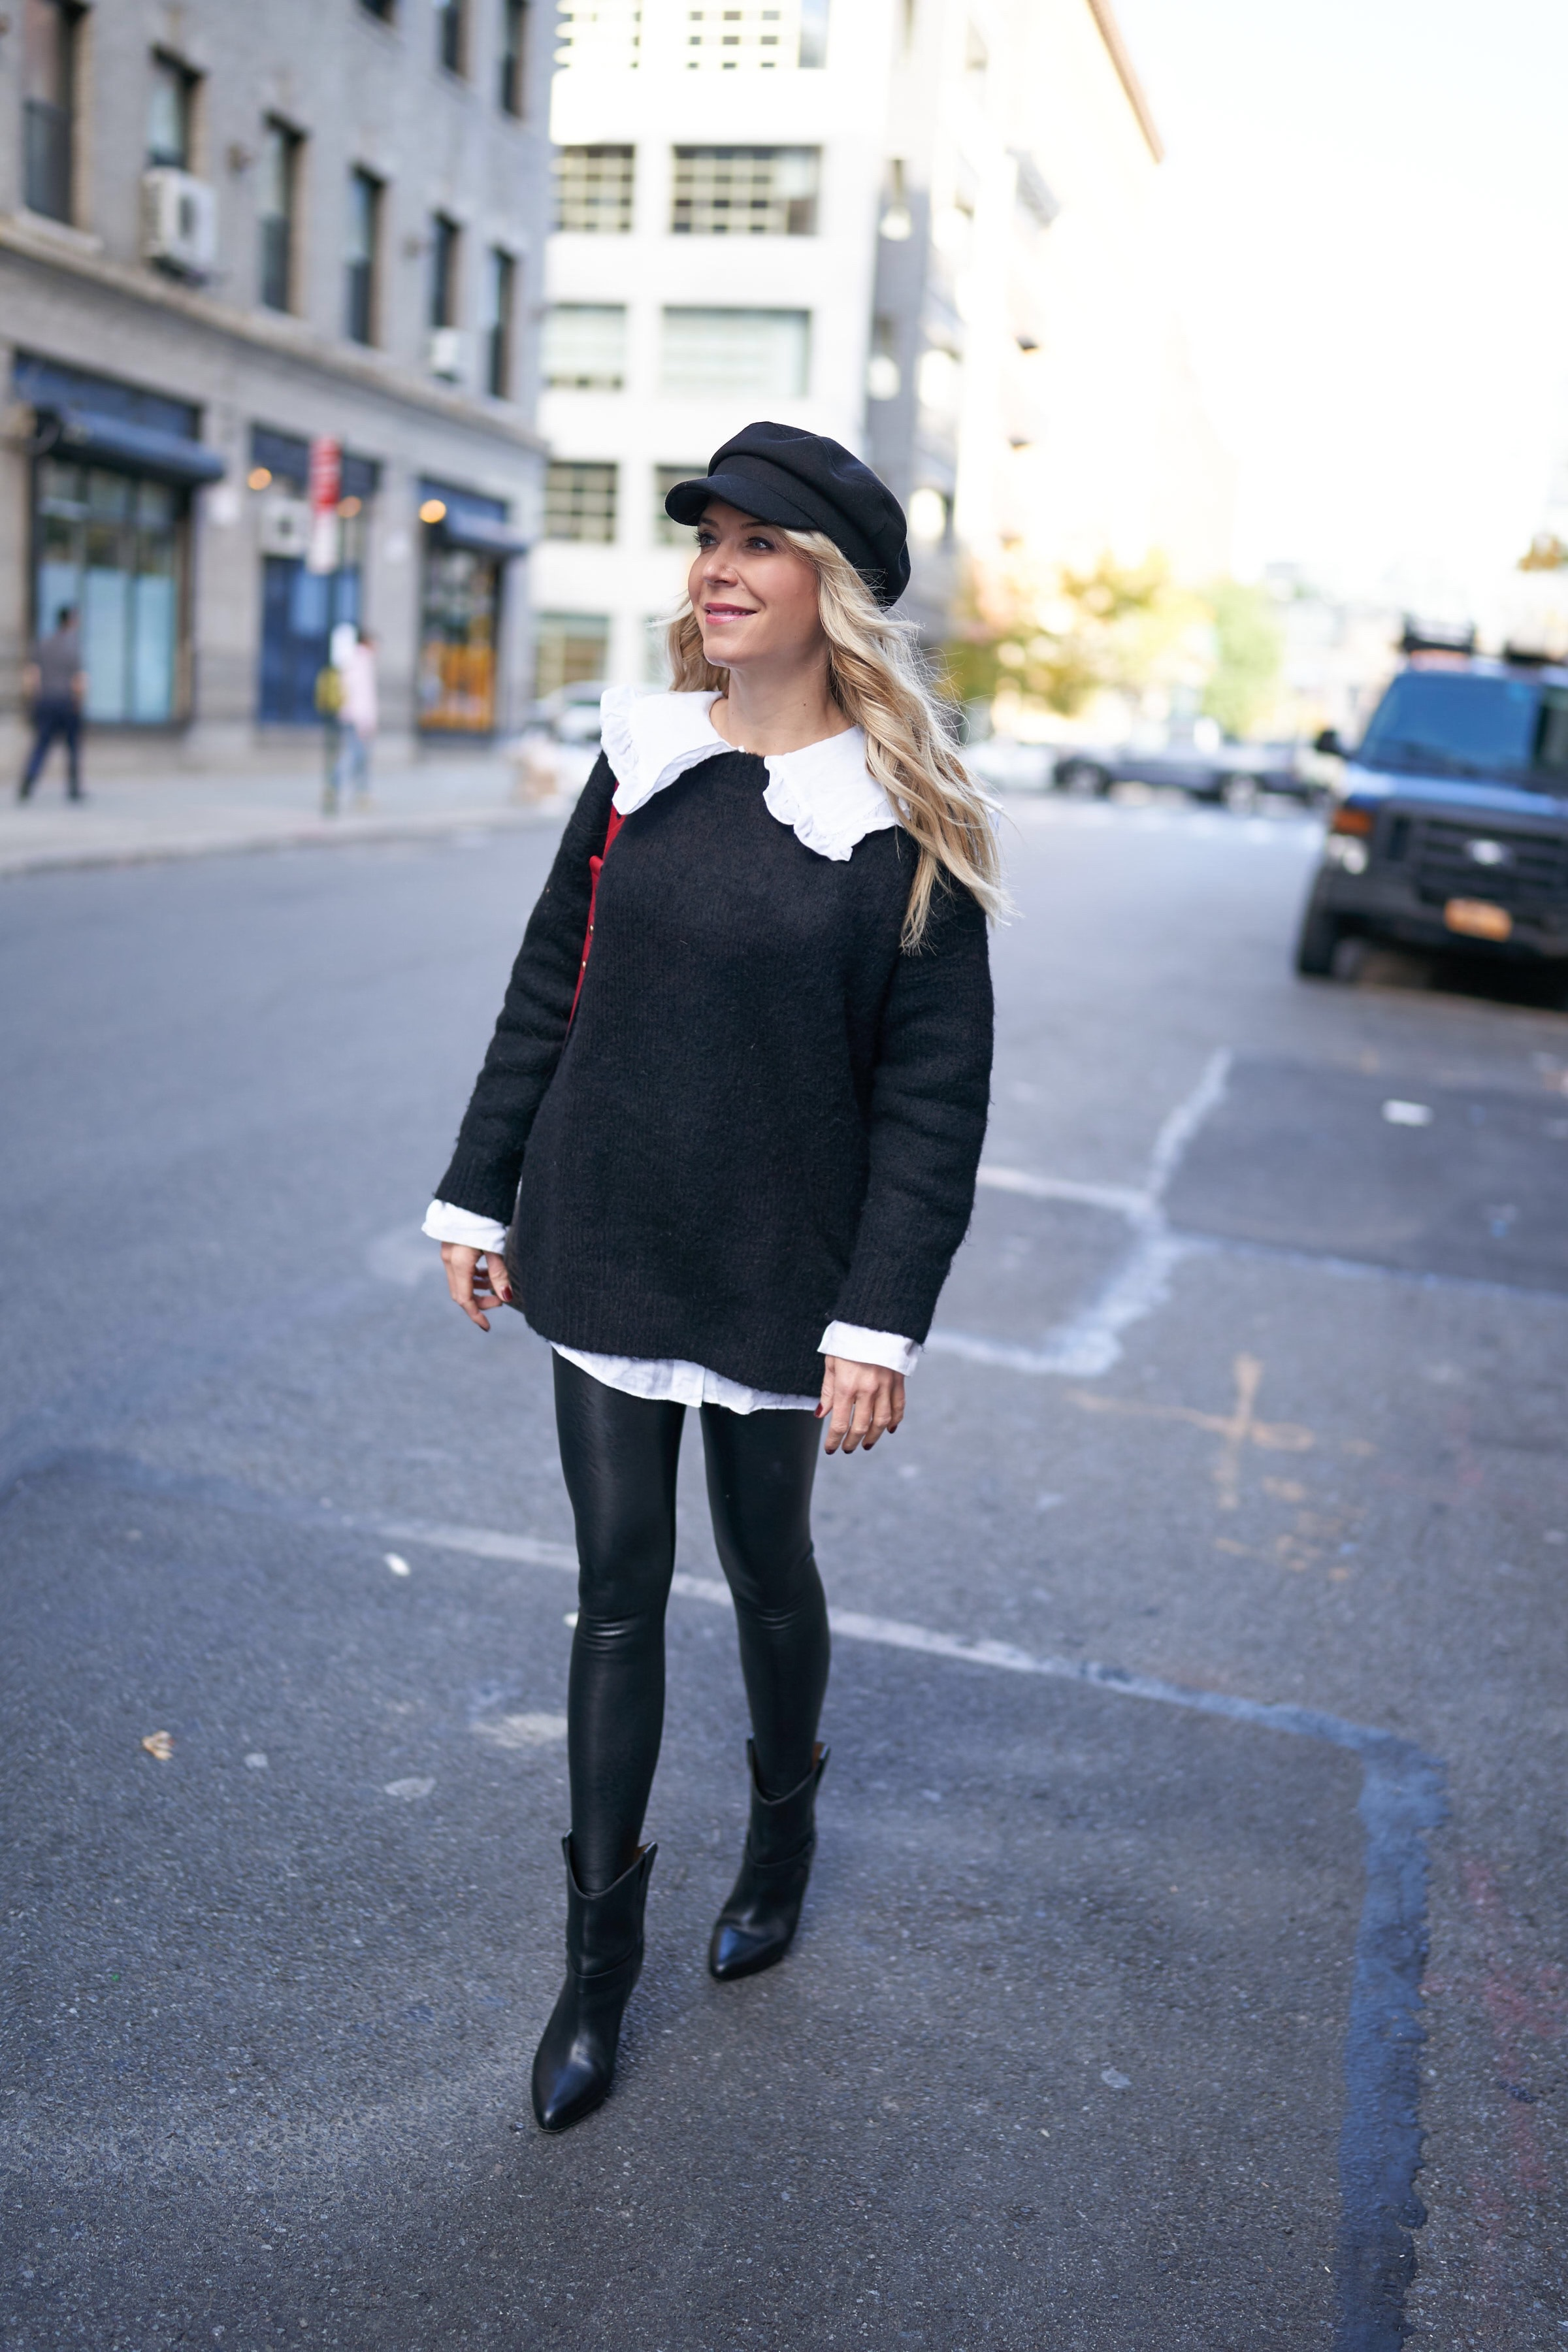 About the Outfits, Peter Pan Collar, Oversized Peter Pan Collar, Faux Leather Leggings, Newsboy Cap, www.abouttheoutfits.com, Laura Bonner